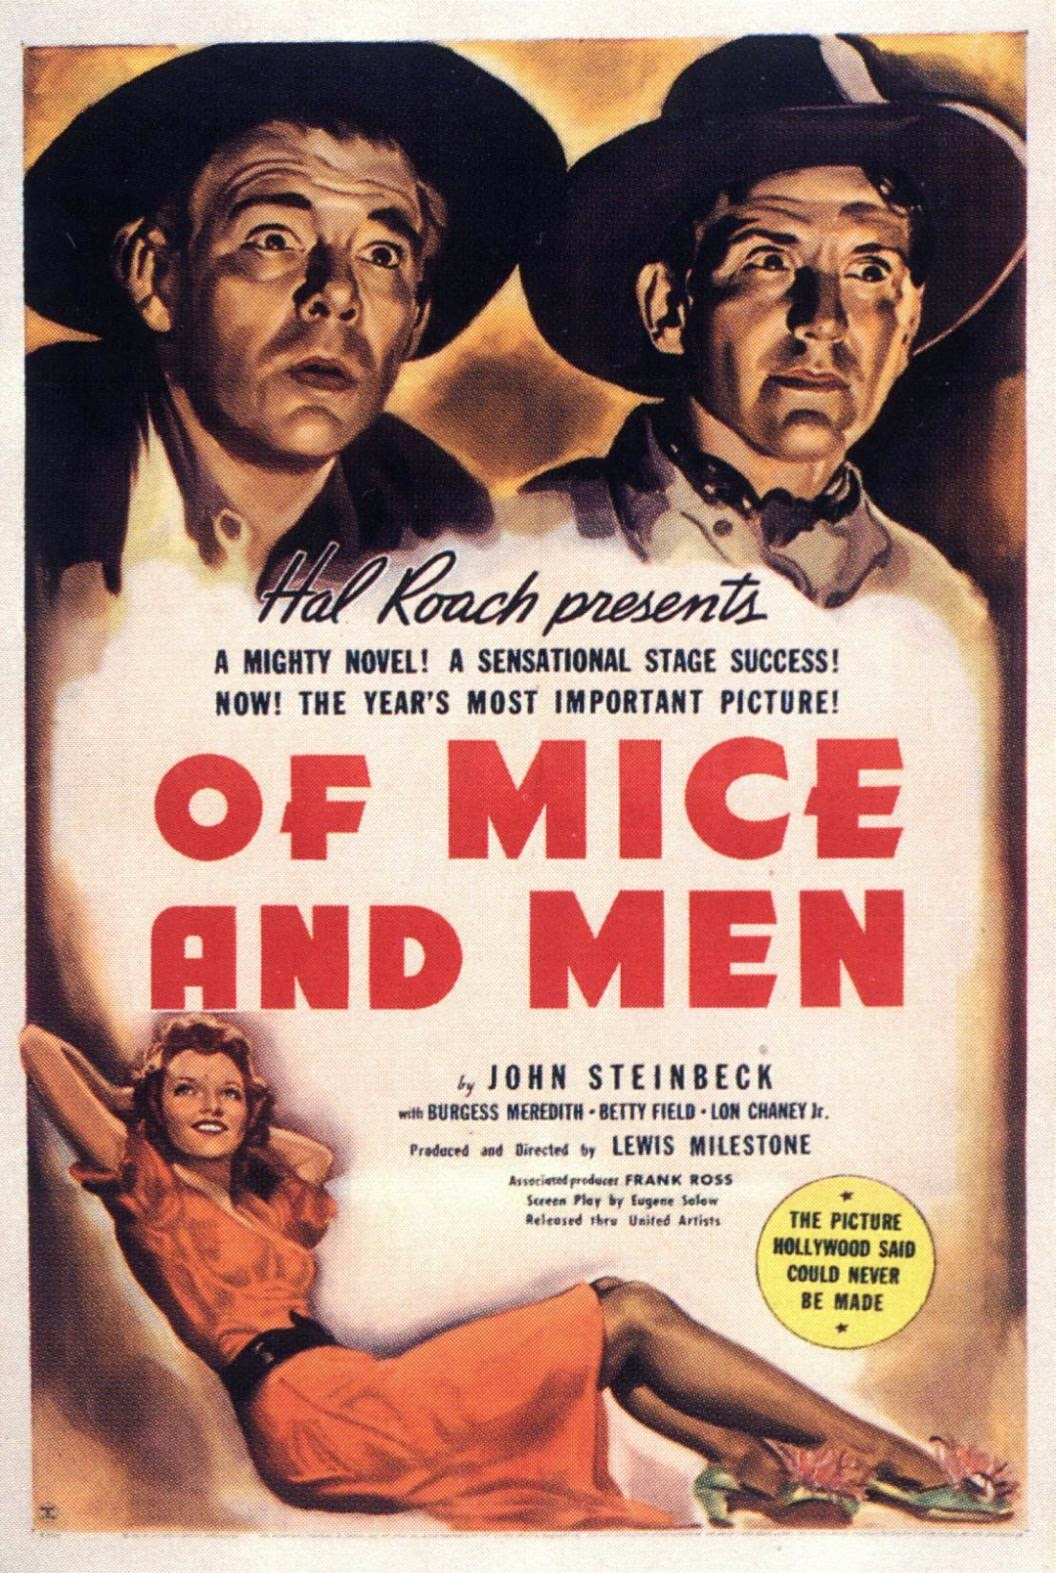 A March Through Film History: Of Mice and Men (1939)